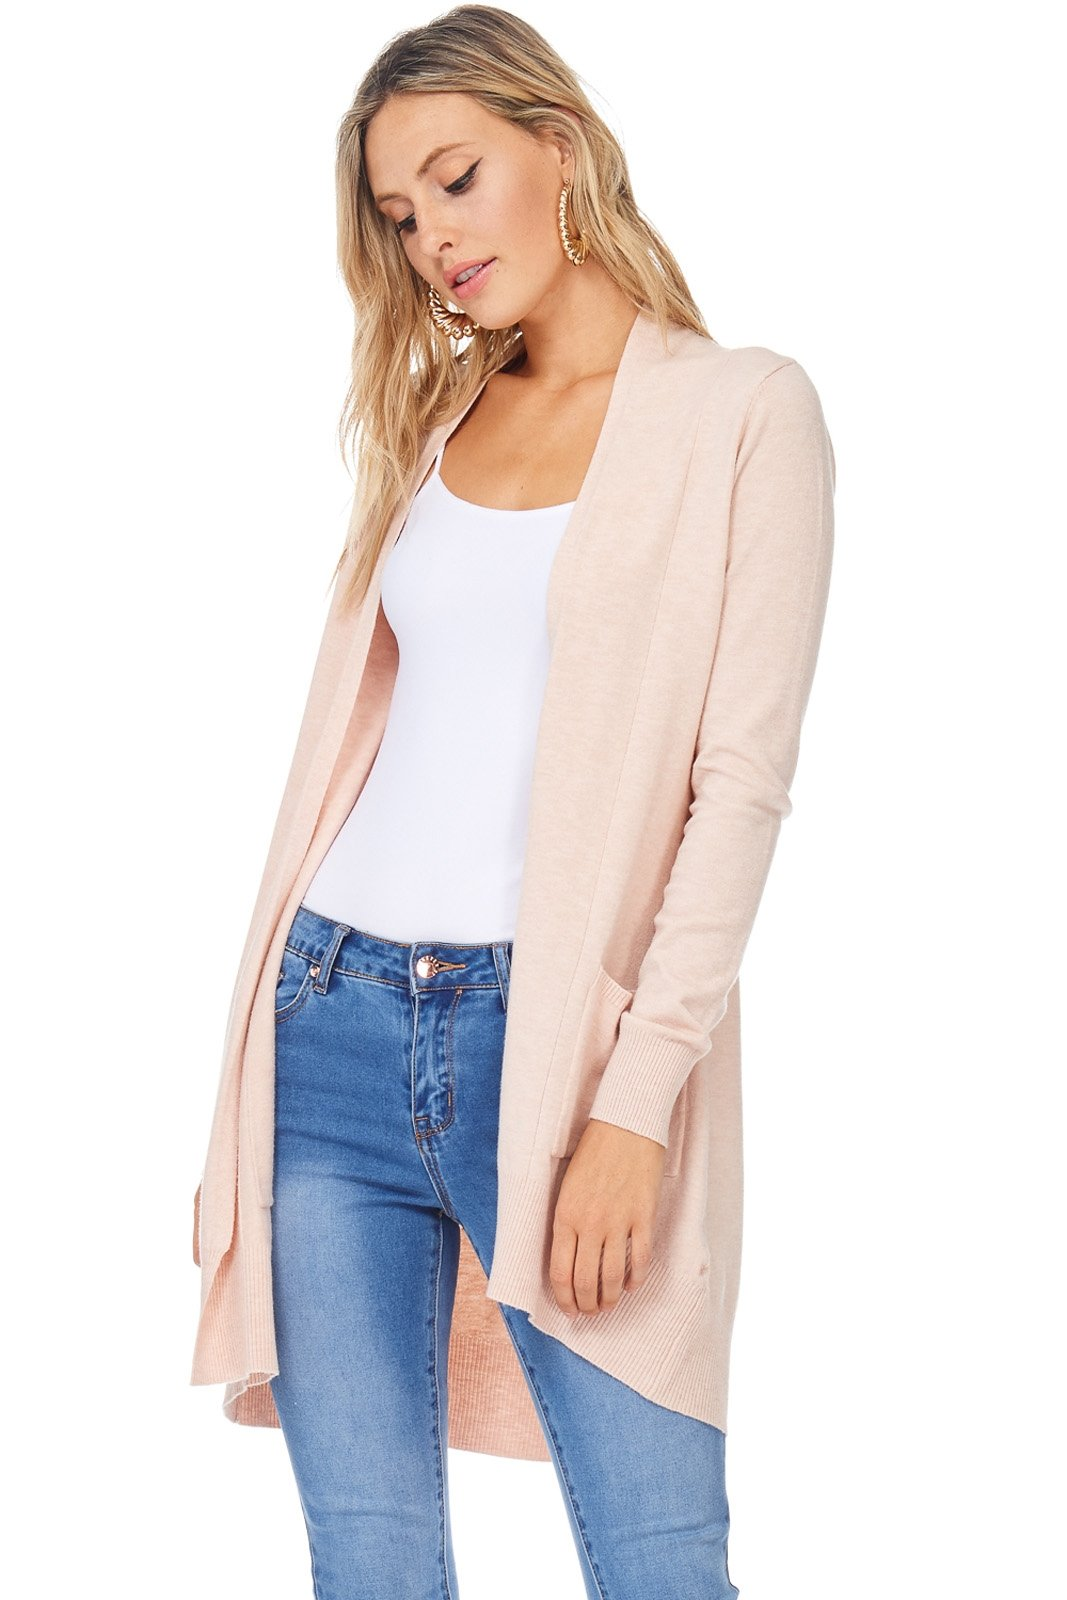 A+D Womens Basic Open Front Knit Cardigan Sweater Top W/Pockets (Blush, Medium/Large)